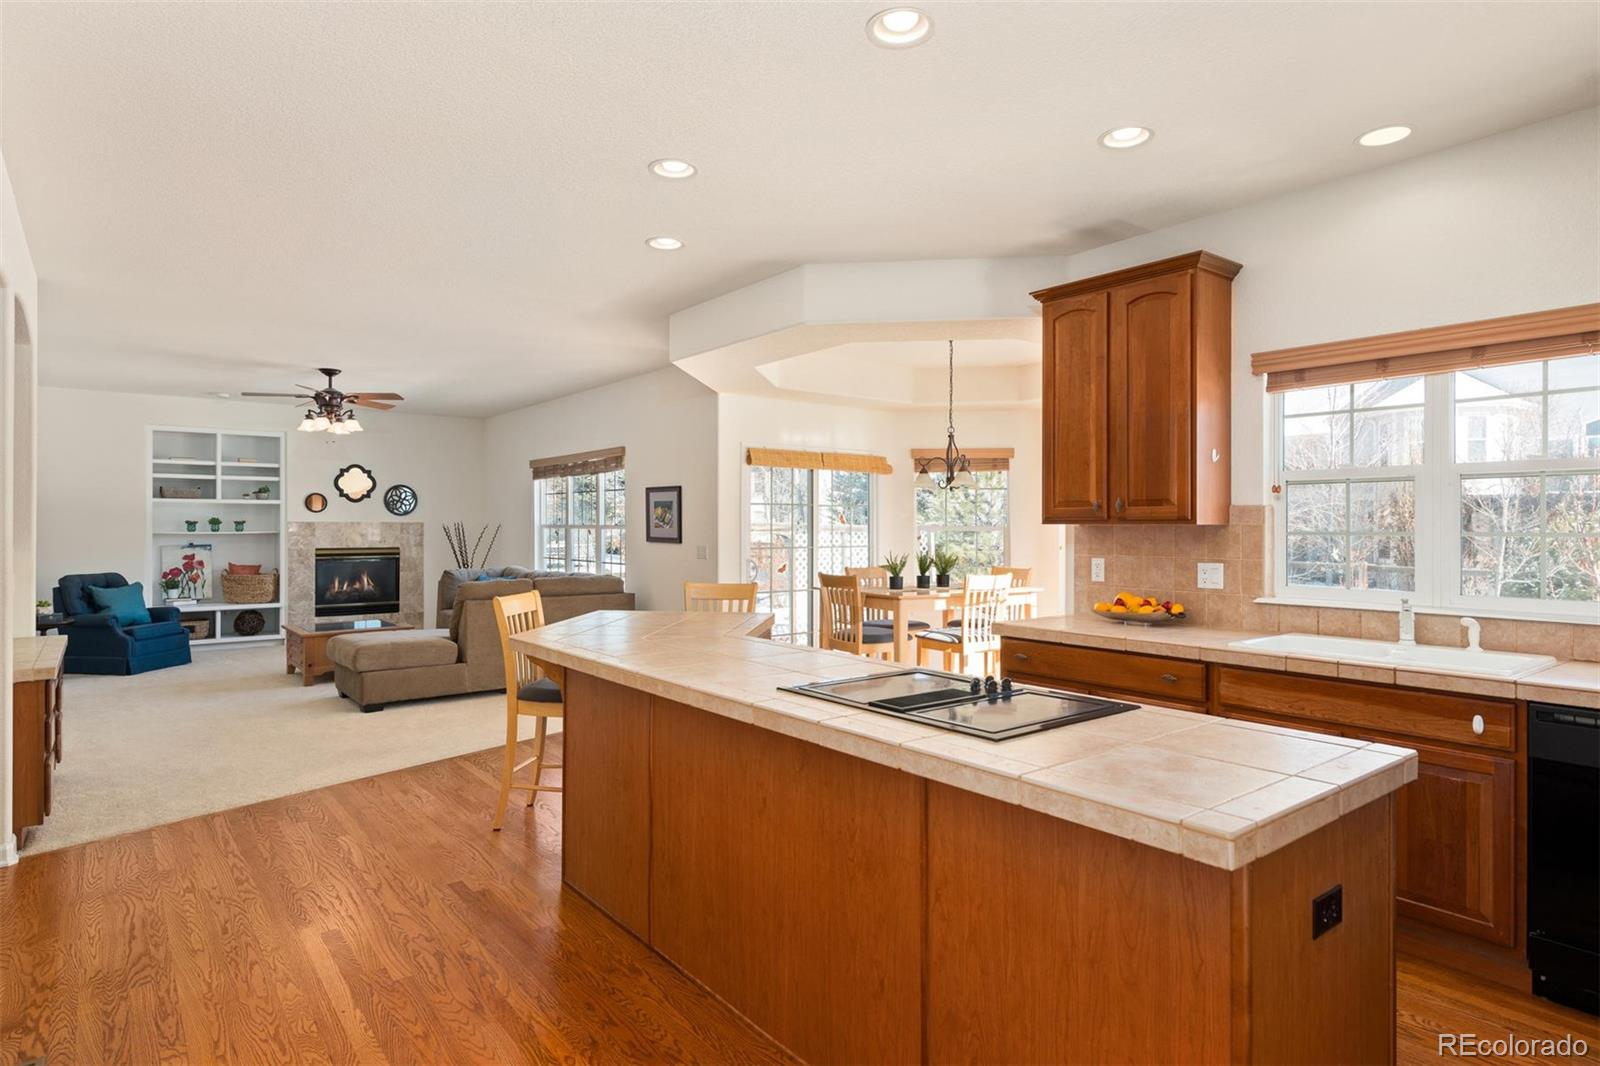 MLS# 3442851 - 4 - 6552 S Ouray Way, Aurora, CO 80016